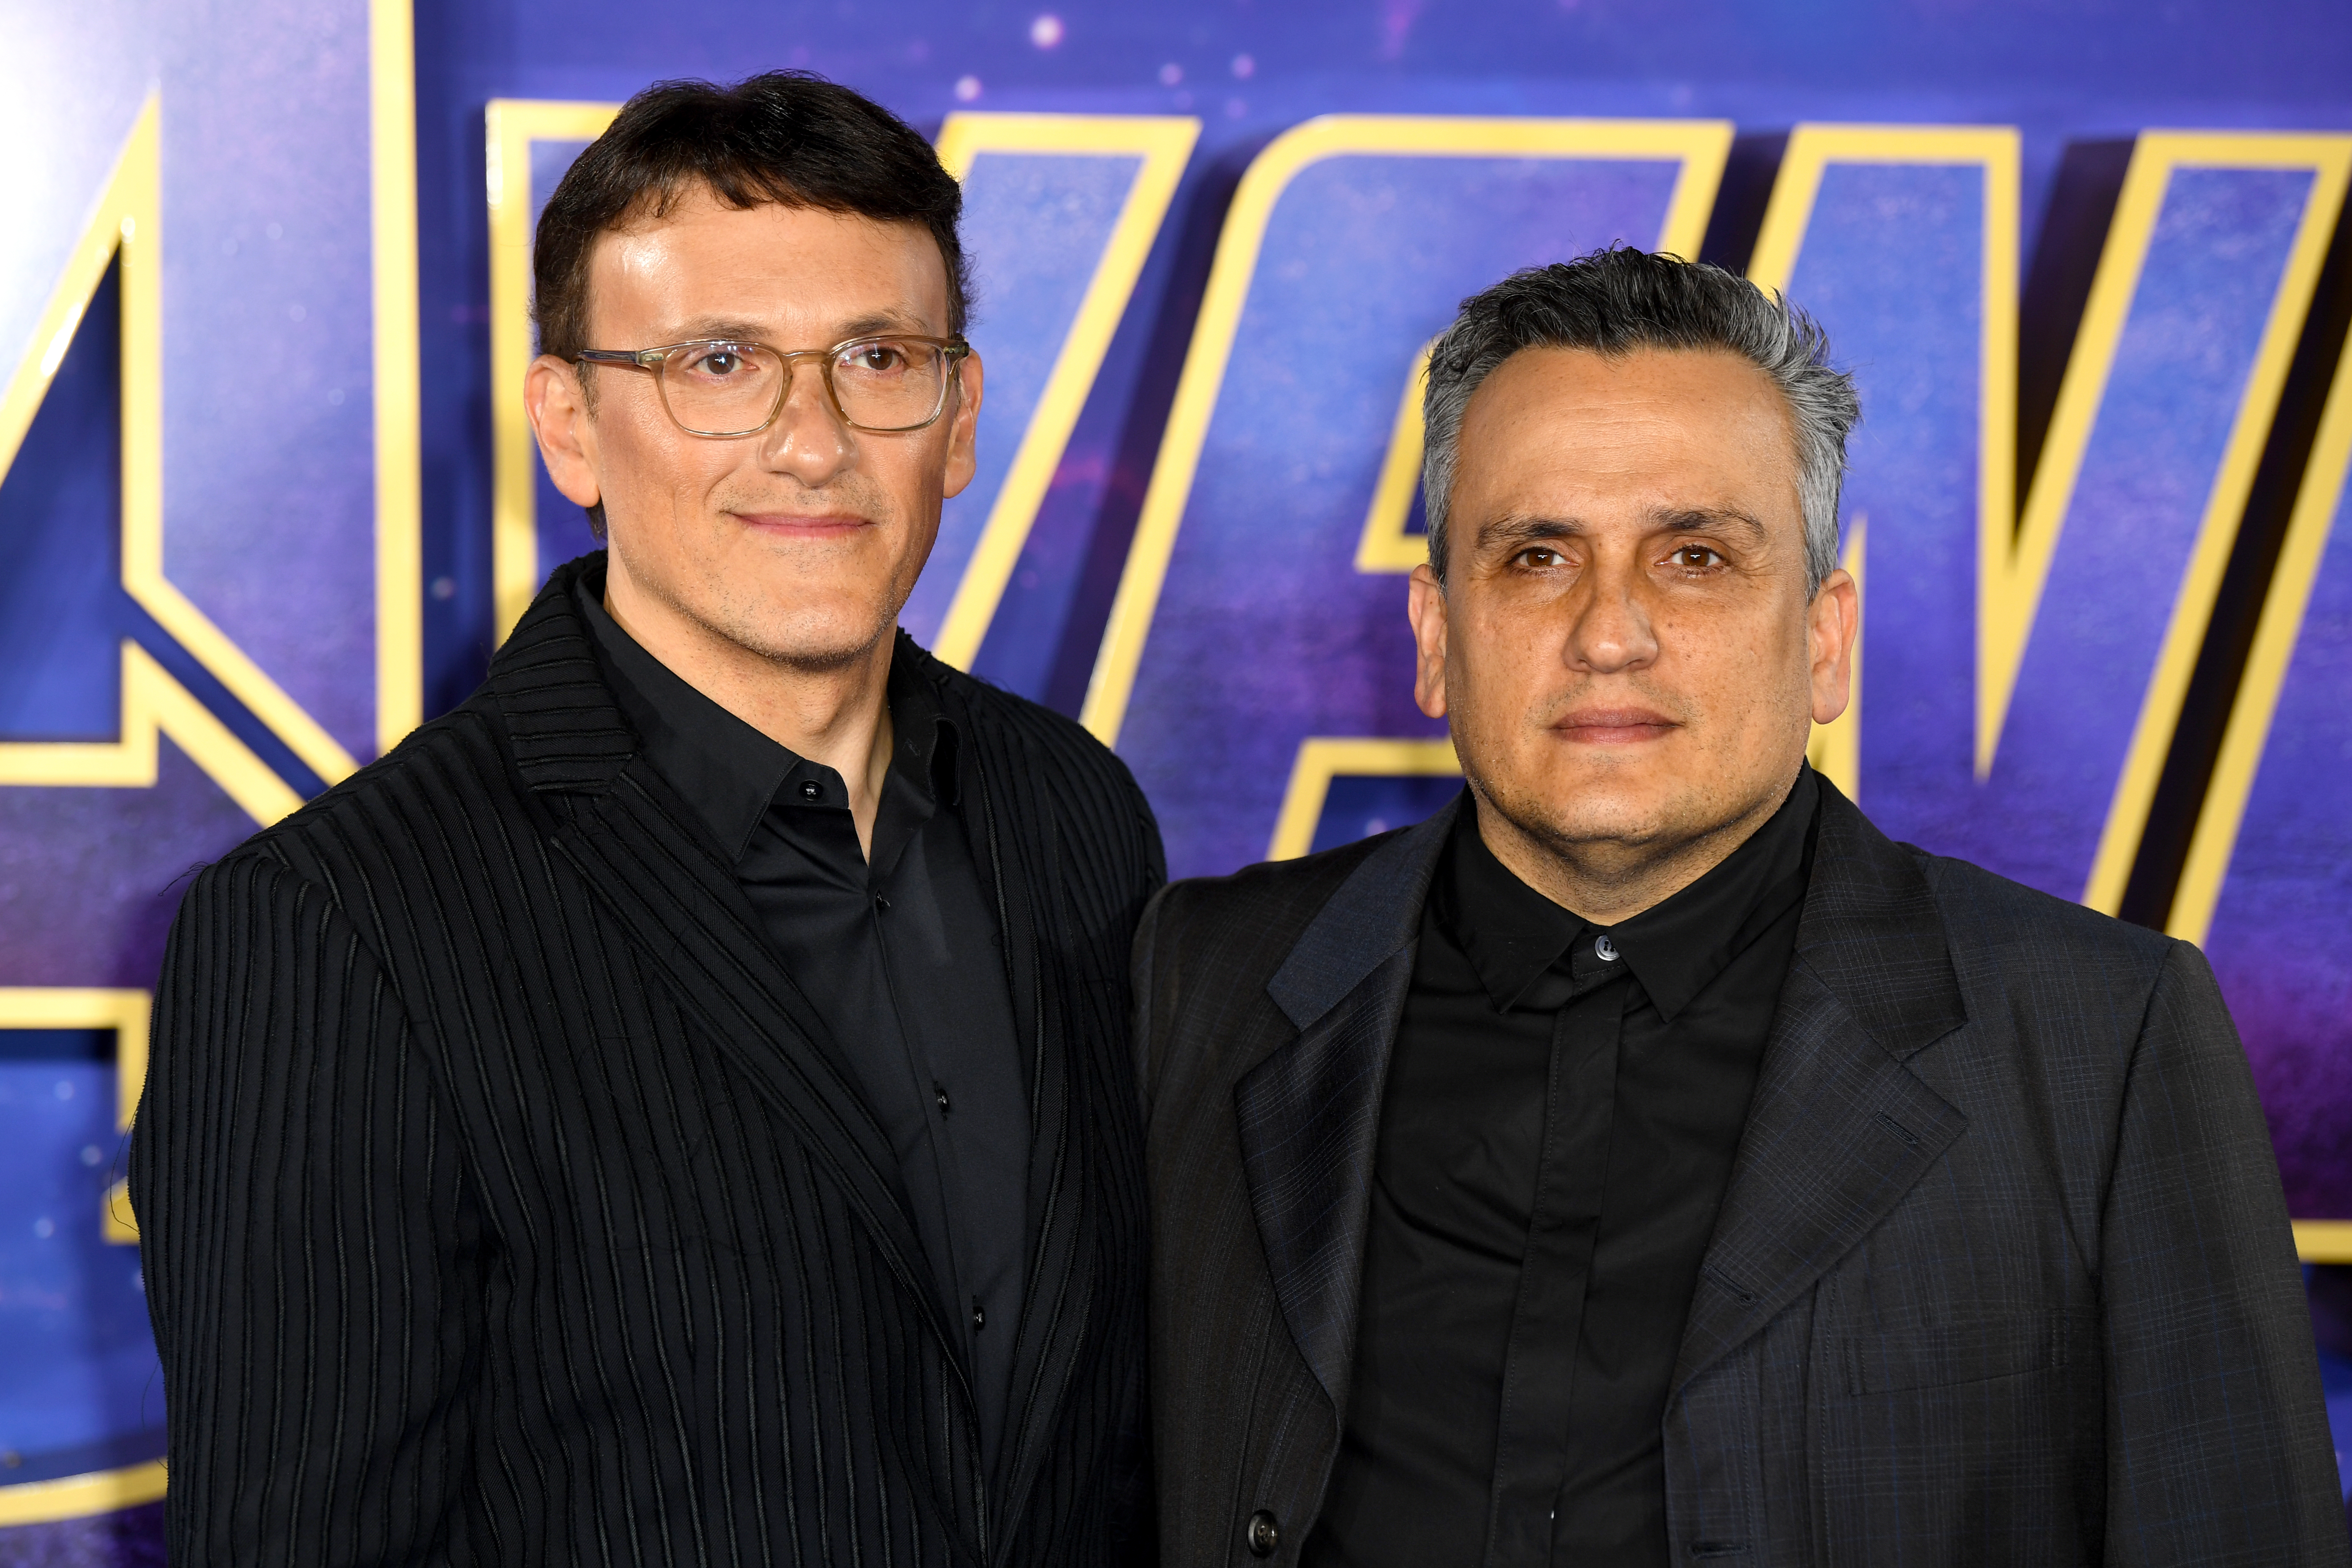 Avengers: Endgame directors Joe and Anthony Russo Brothers